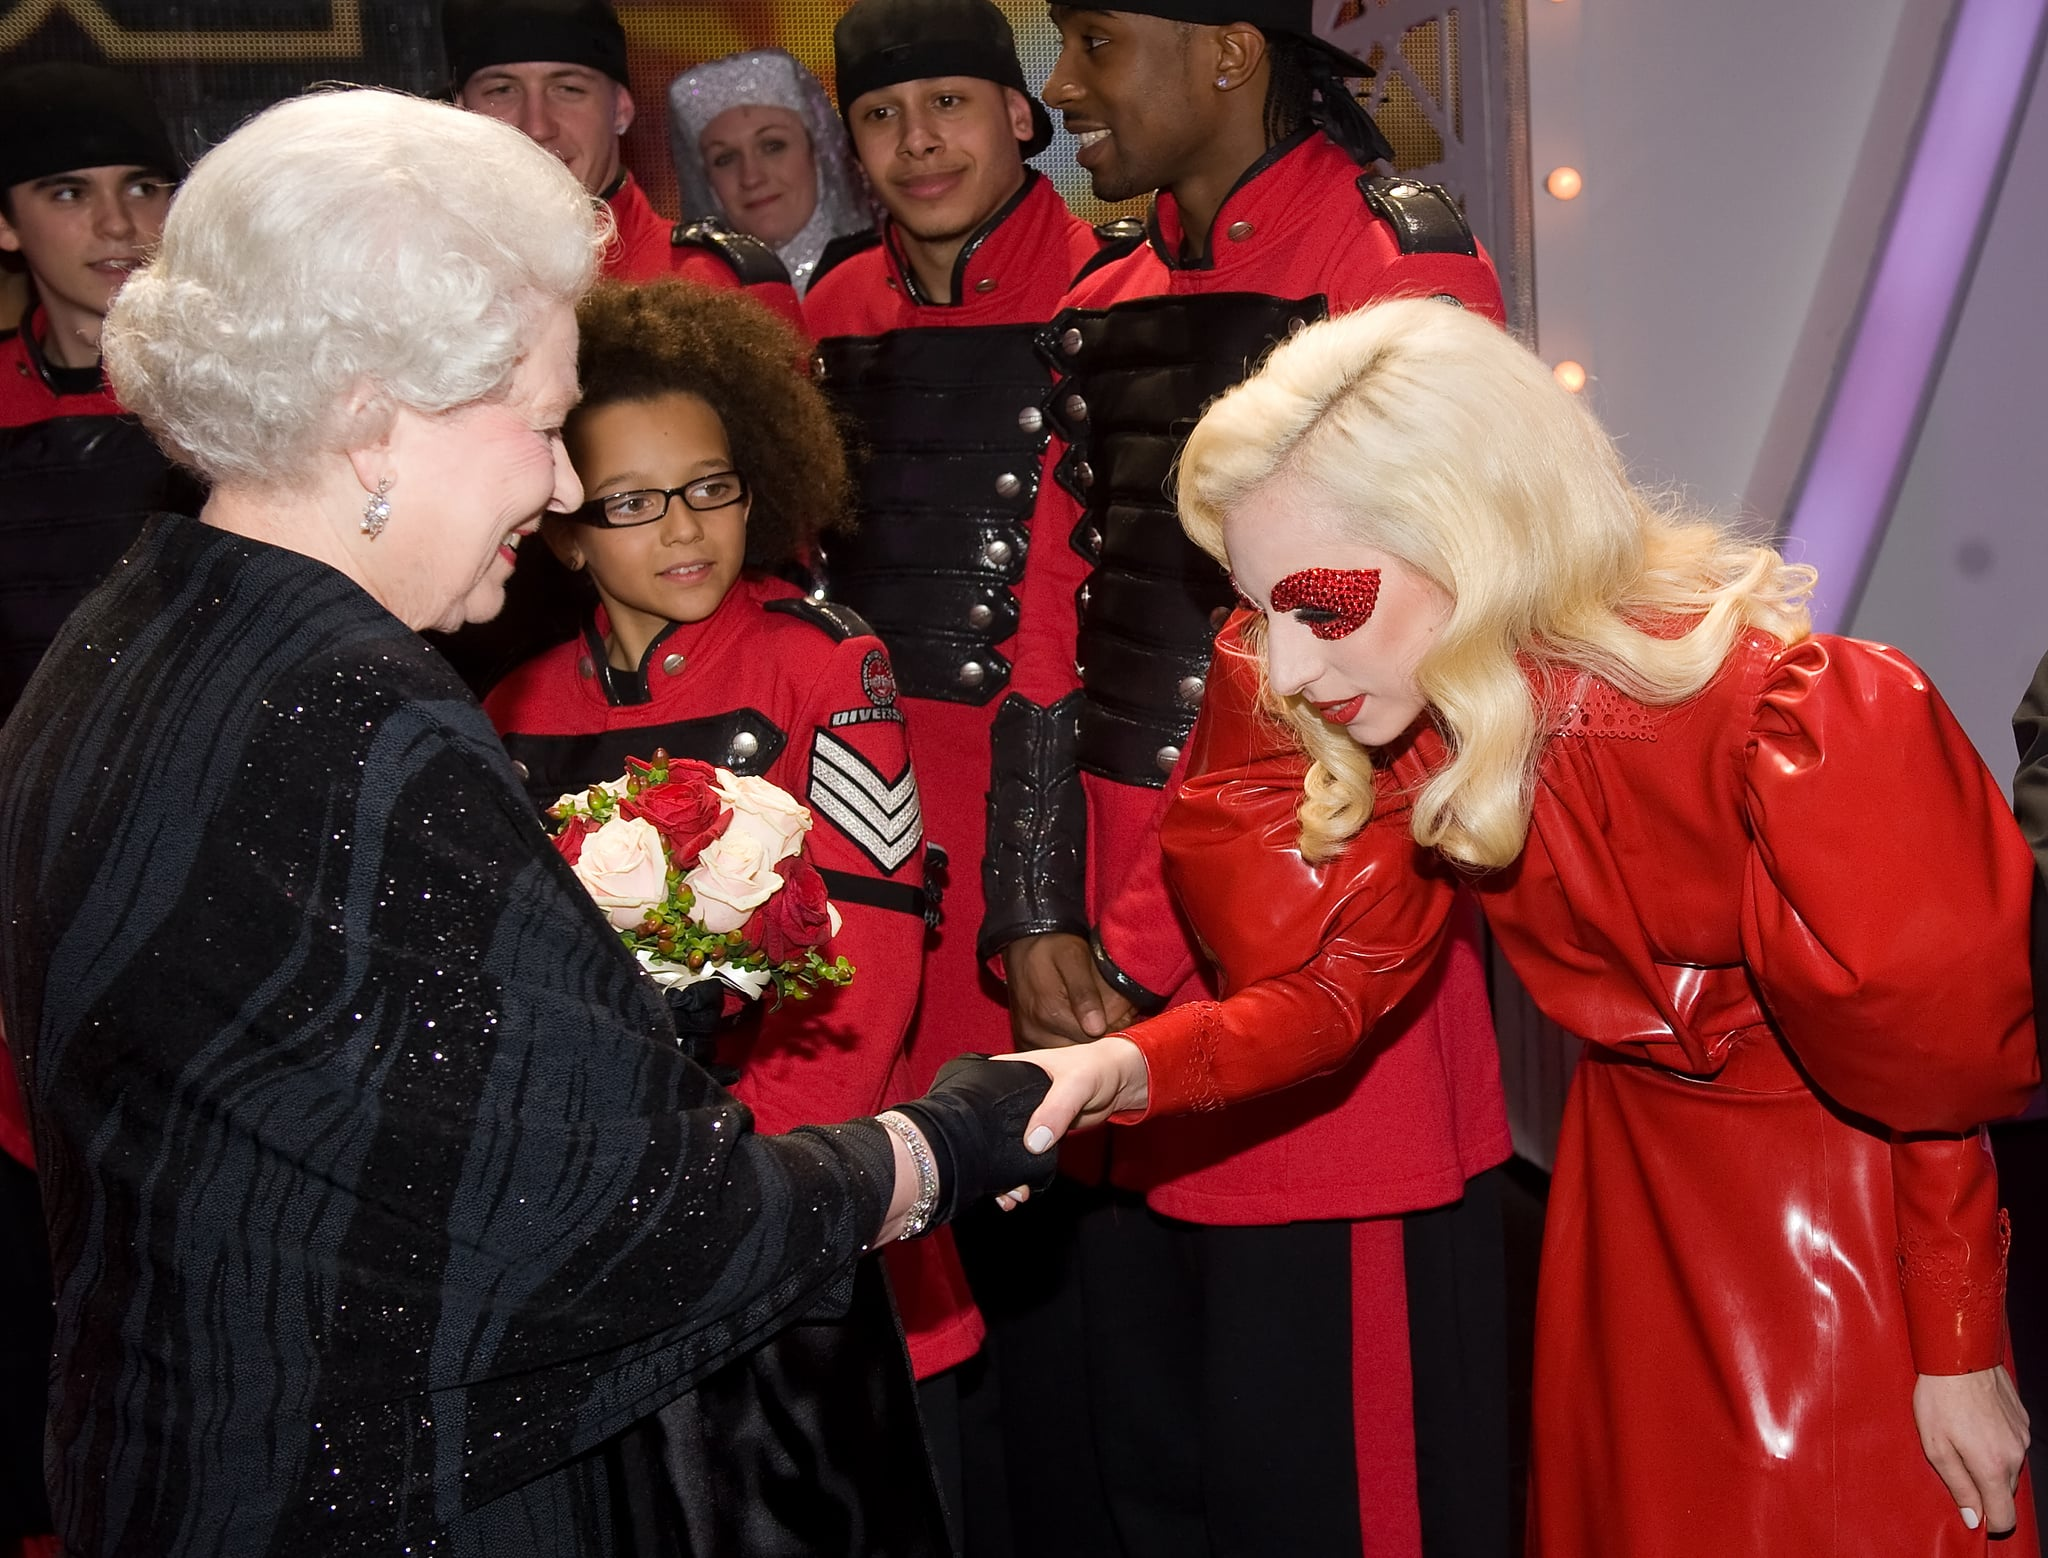 Lady Gaga was given the opportunity to meet Queen Elizabeth after the Royal Variety Performance in Blackpool, England, in December 2009.